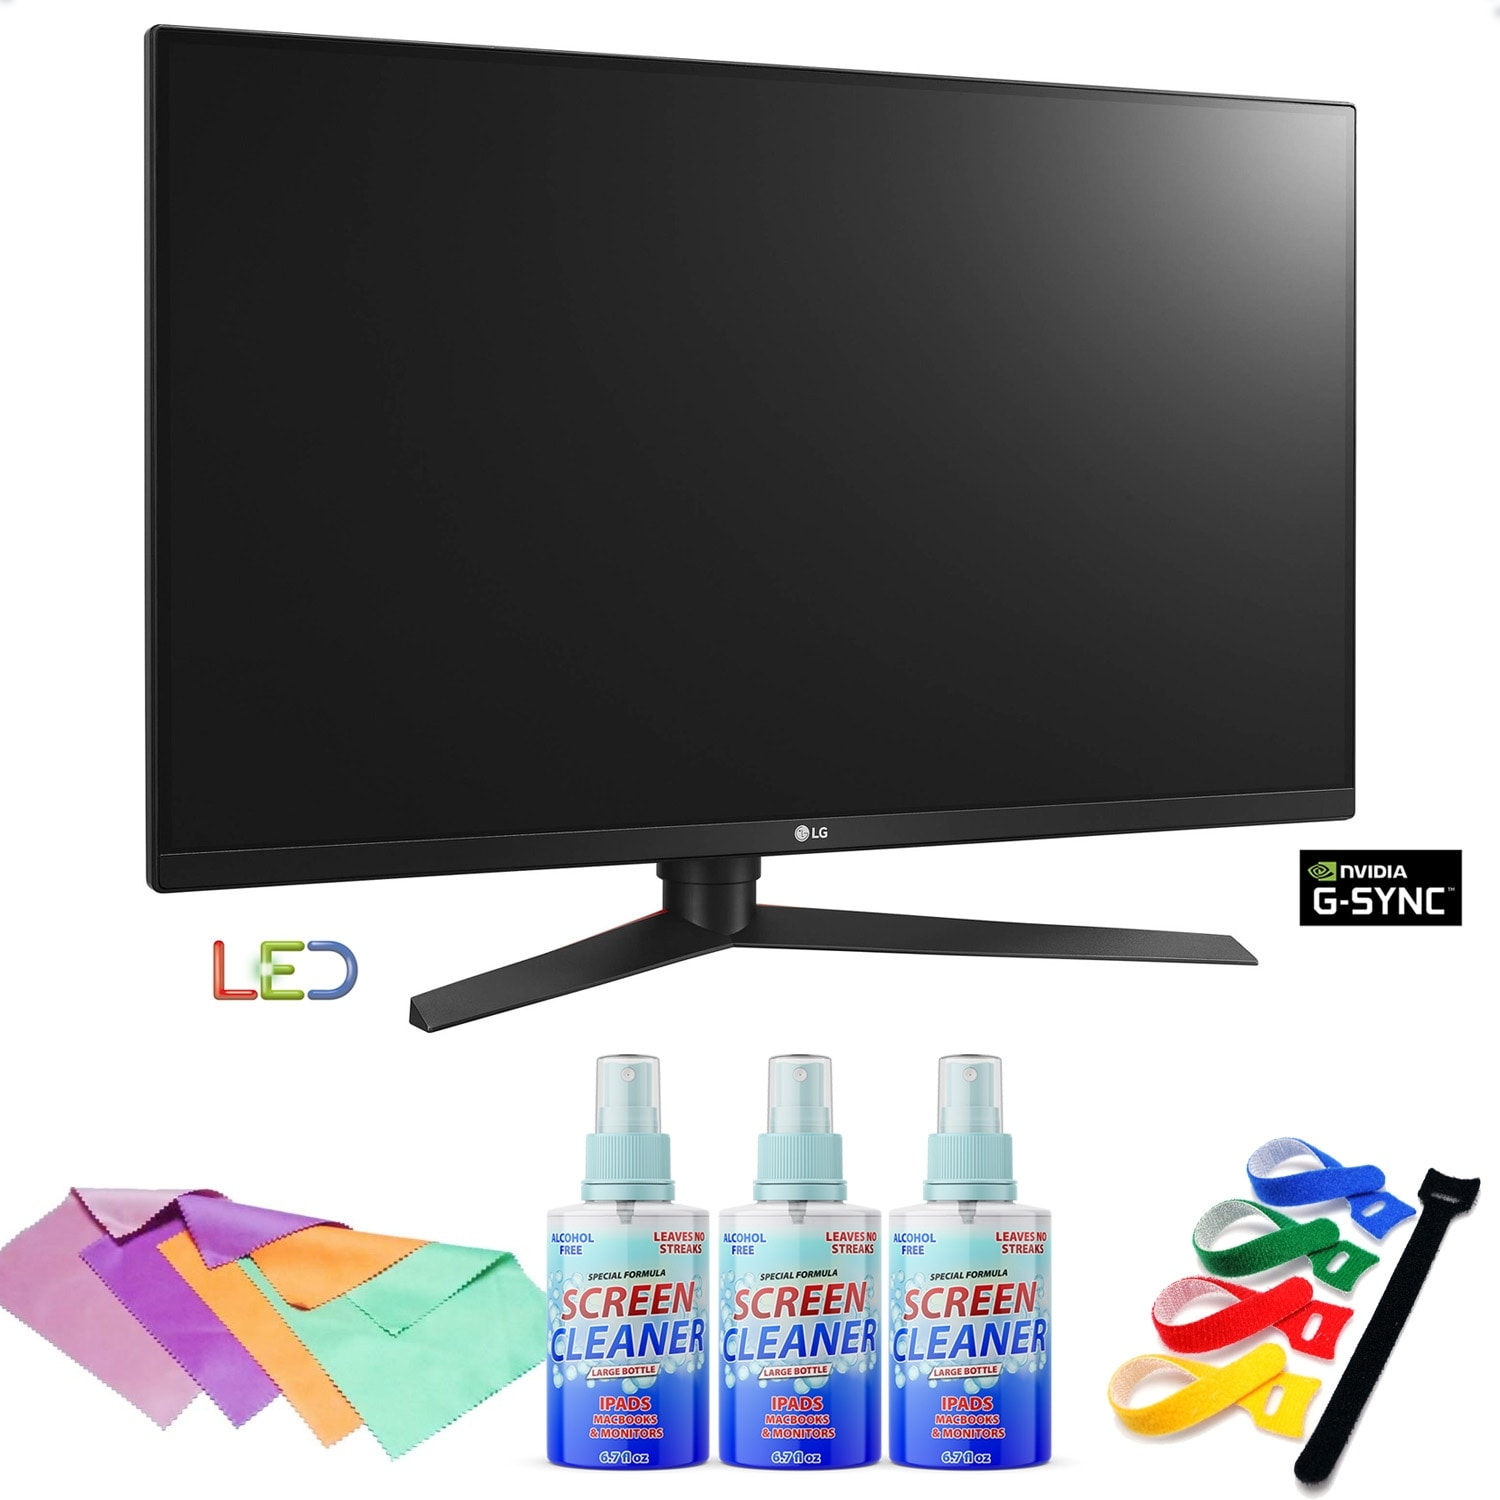 "LG 32GK850GB 31.5"""" 16:9 144 Hz GSync LCD Gaming Monitor"